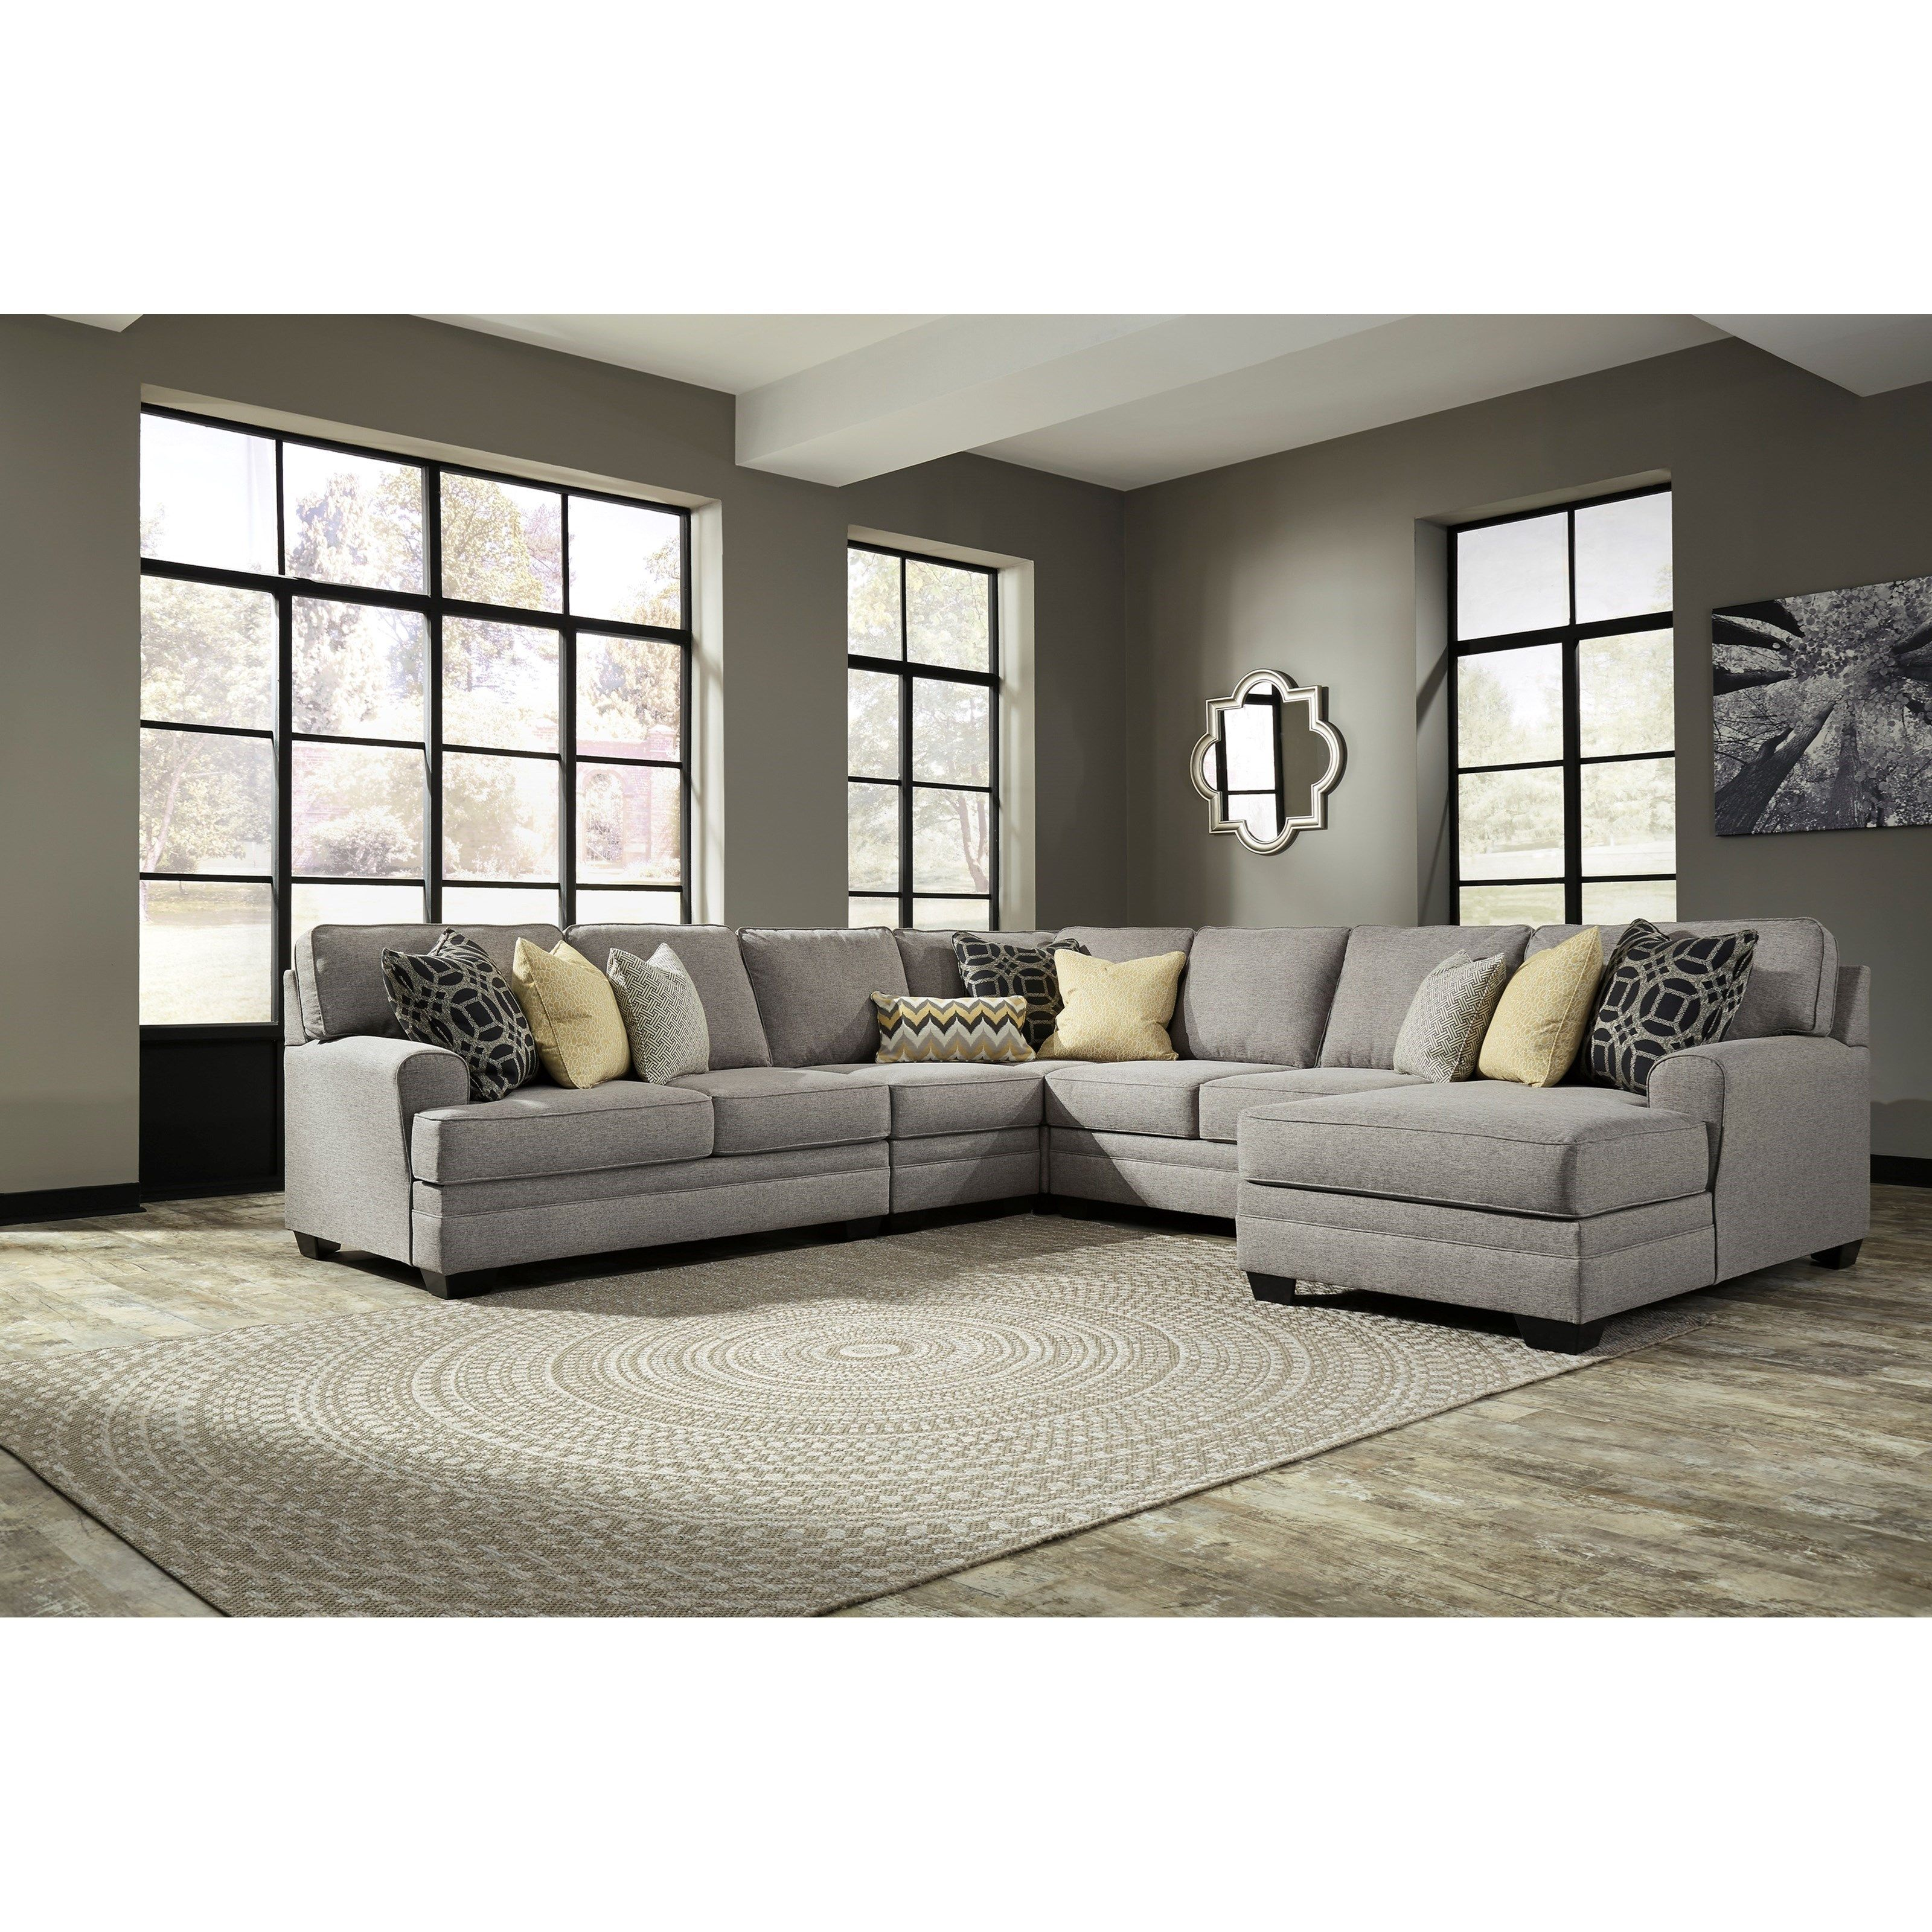 pieces by chocolate piece right with furniture sold separately pin sectional vista ashley chaise